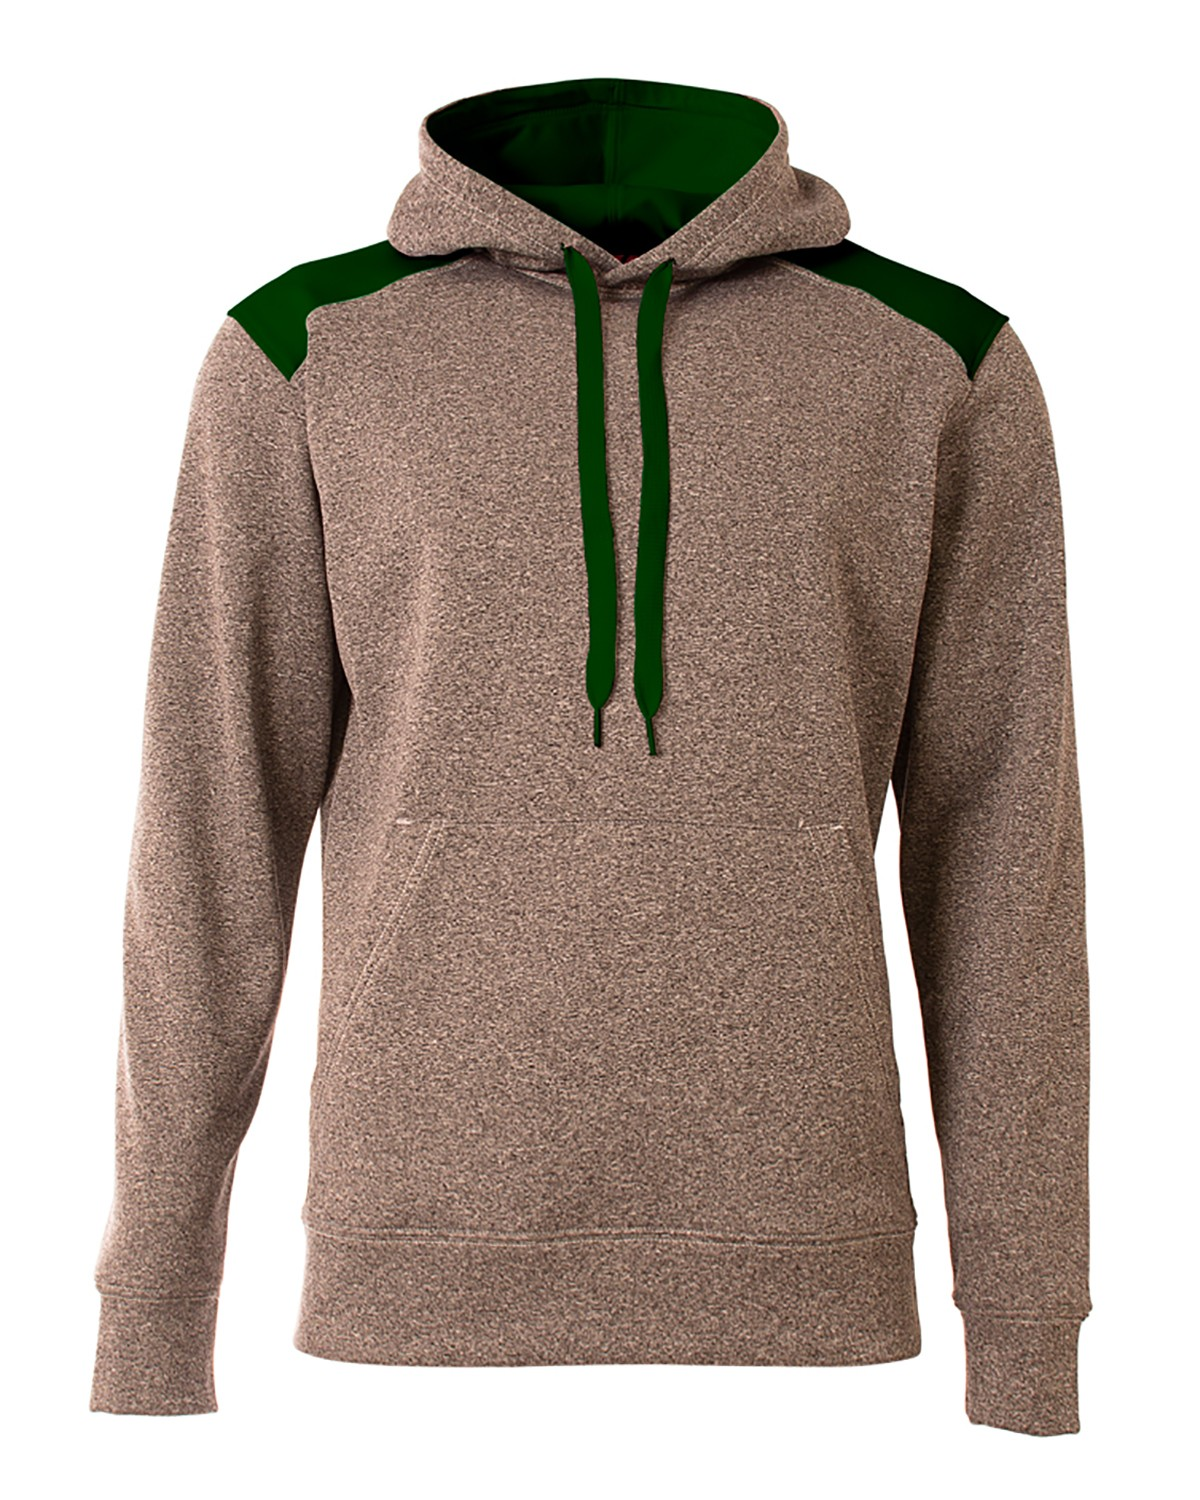 A4 N4093 Men's Tourney Color Block Tech Fleece Hooded Sweatshirt